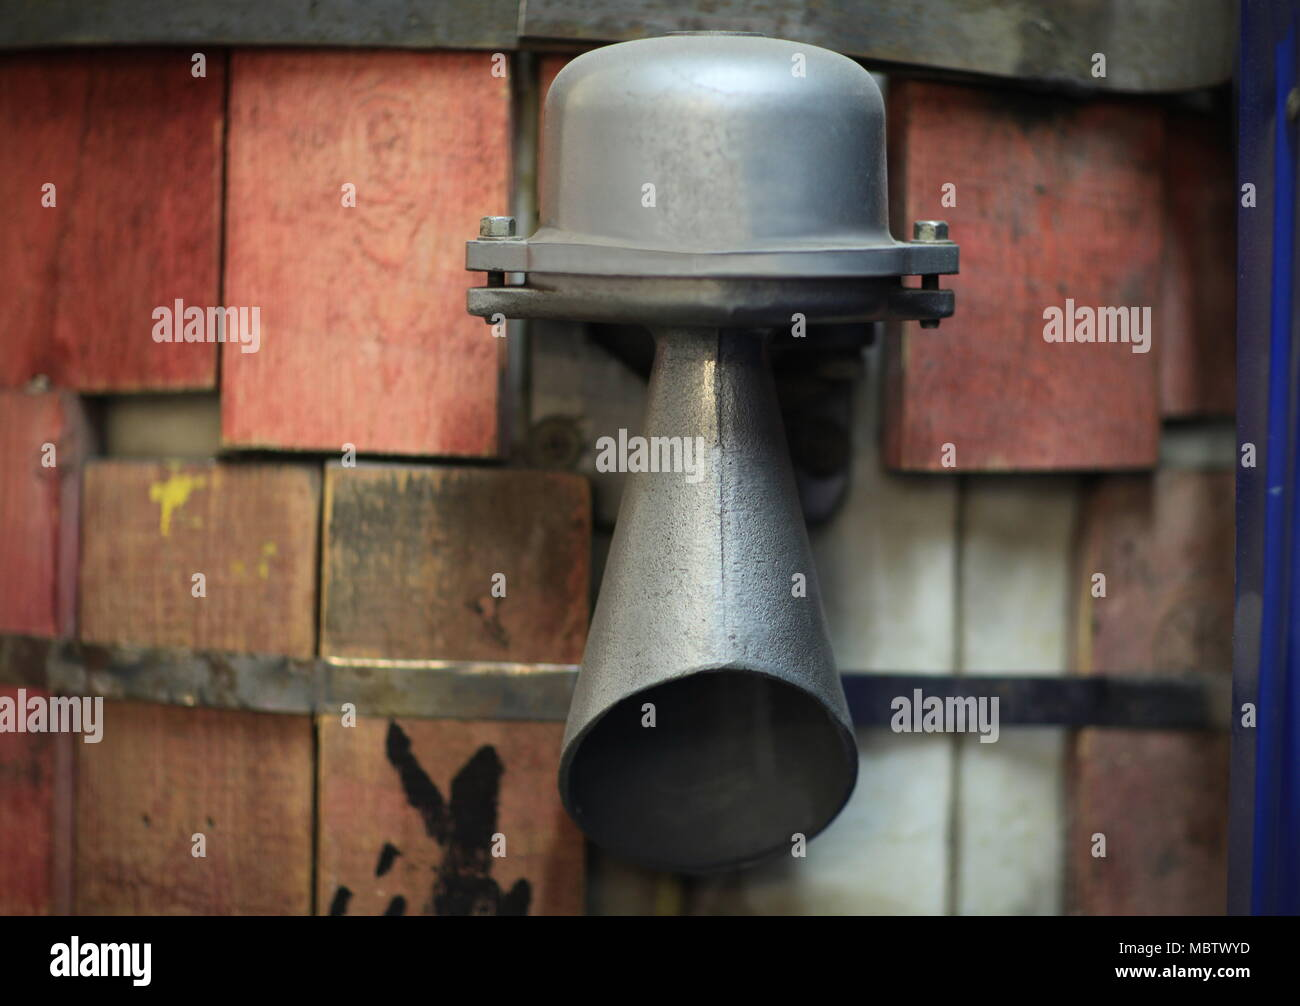 The fog horn Outdoor speakers System - Stock Image